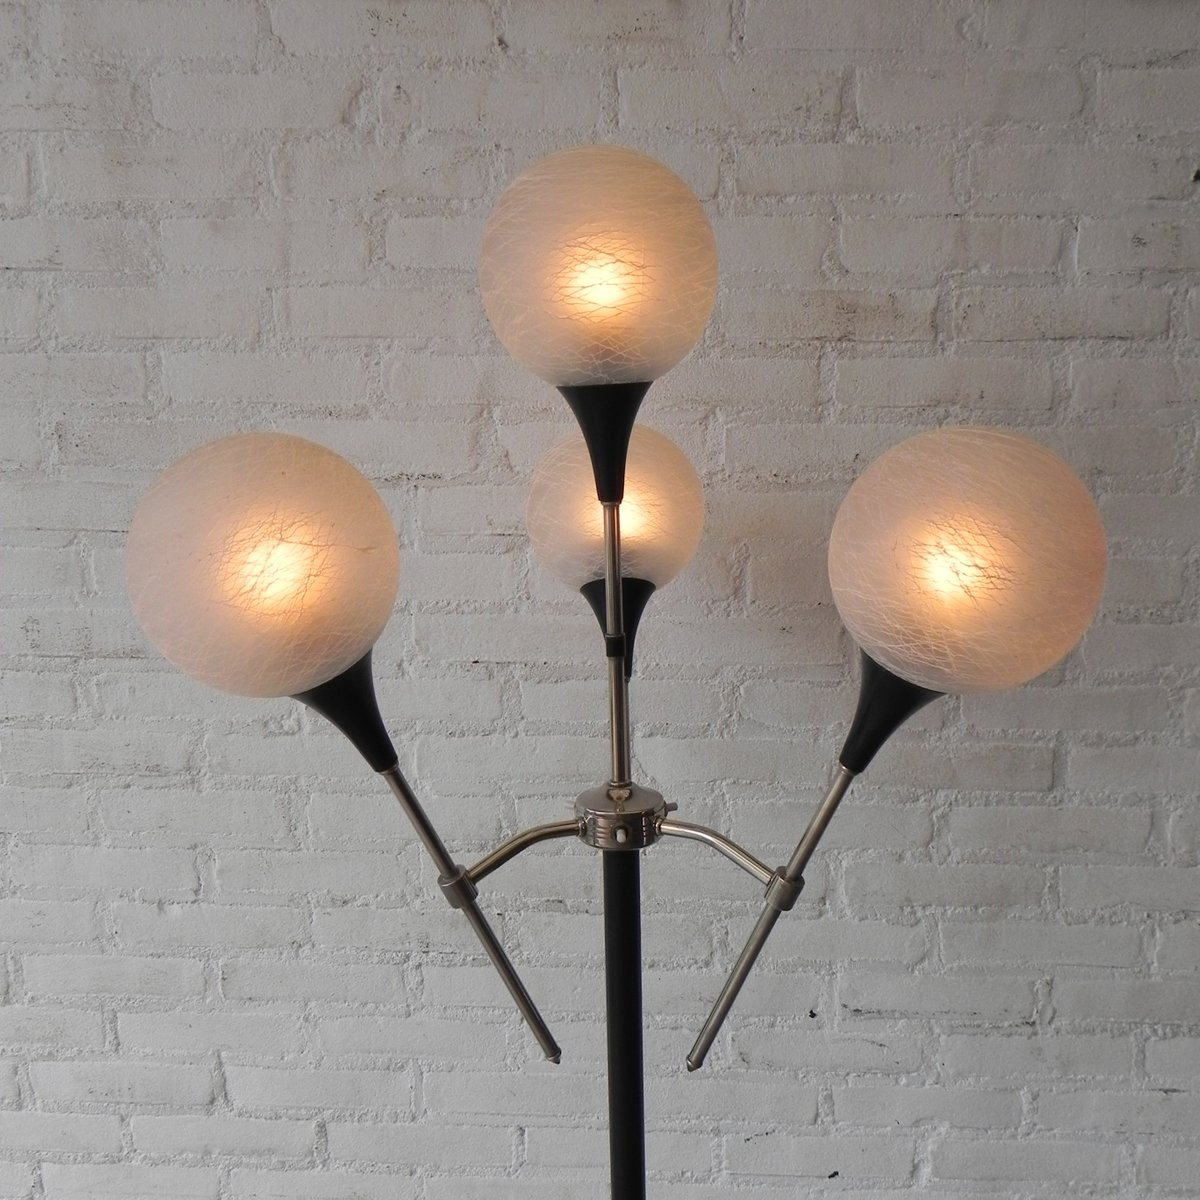 Vintage French Floor Lamp with 4 Glass Spheres for sale at Pamono